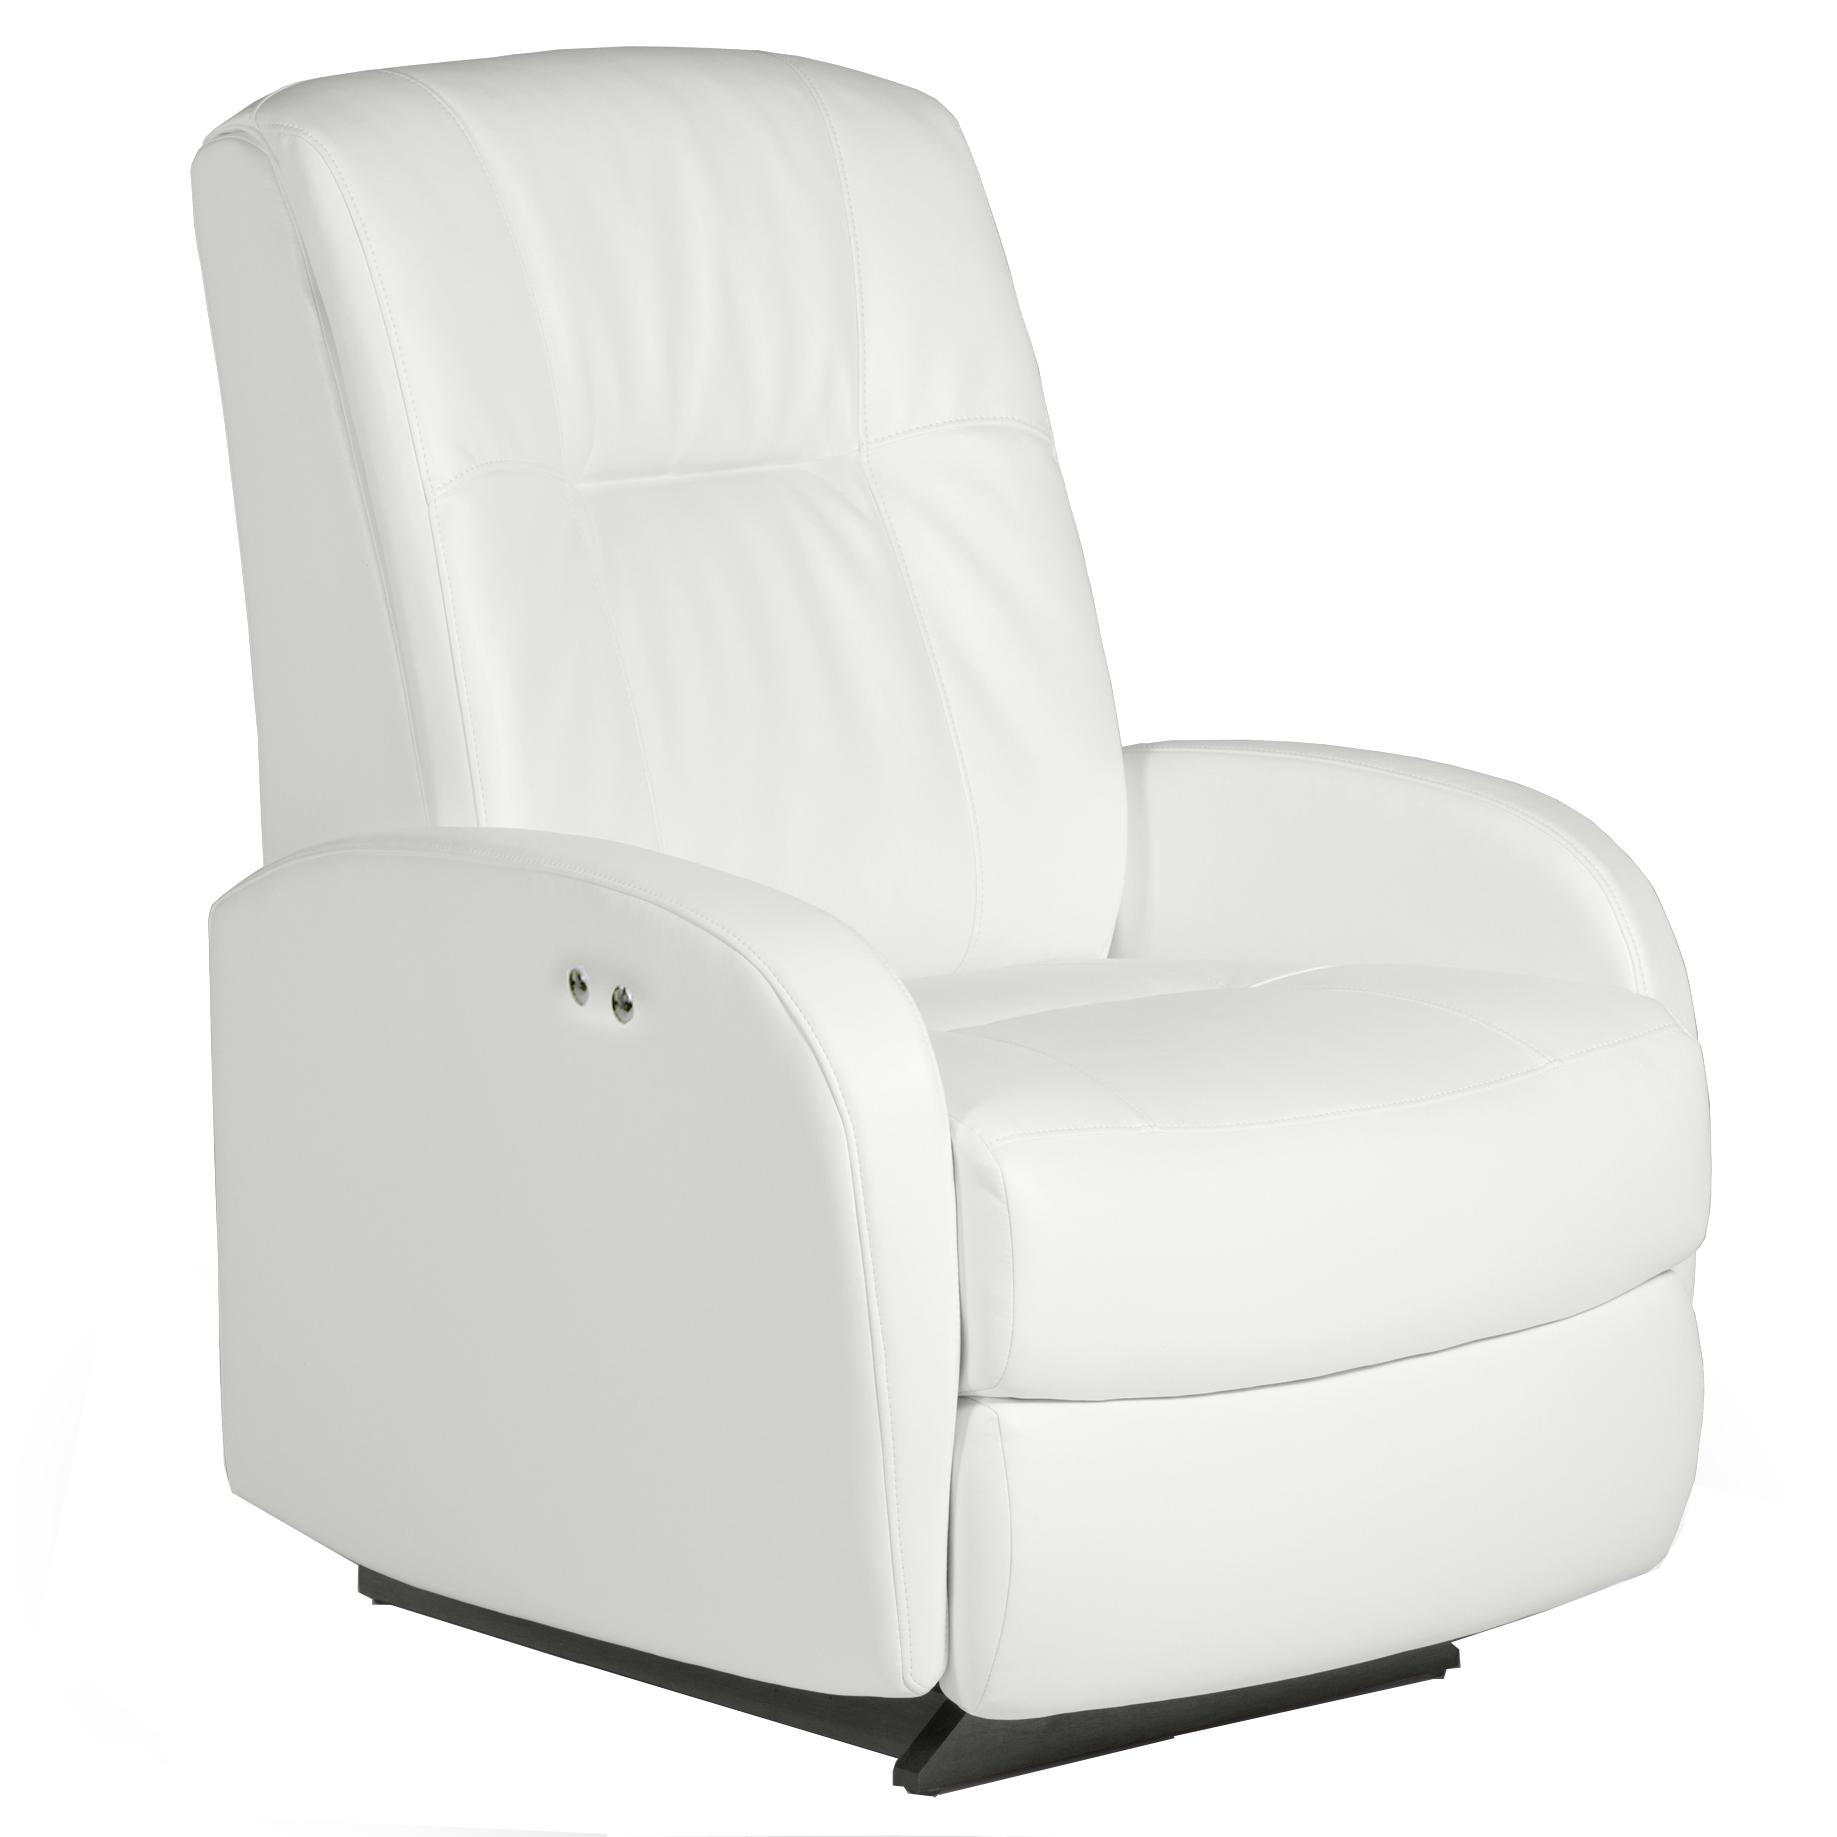 Ruddick Rocker Recliner by Best Home Furnishings at Steger's Furniture